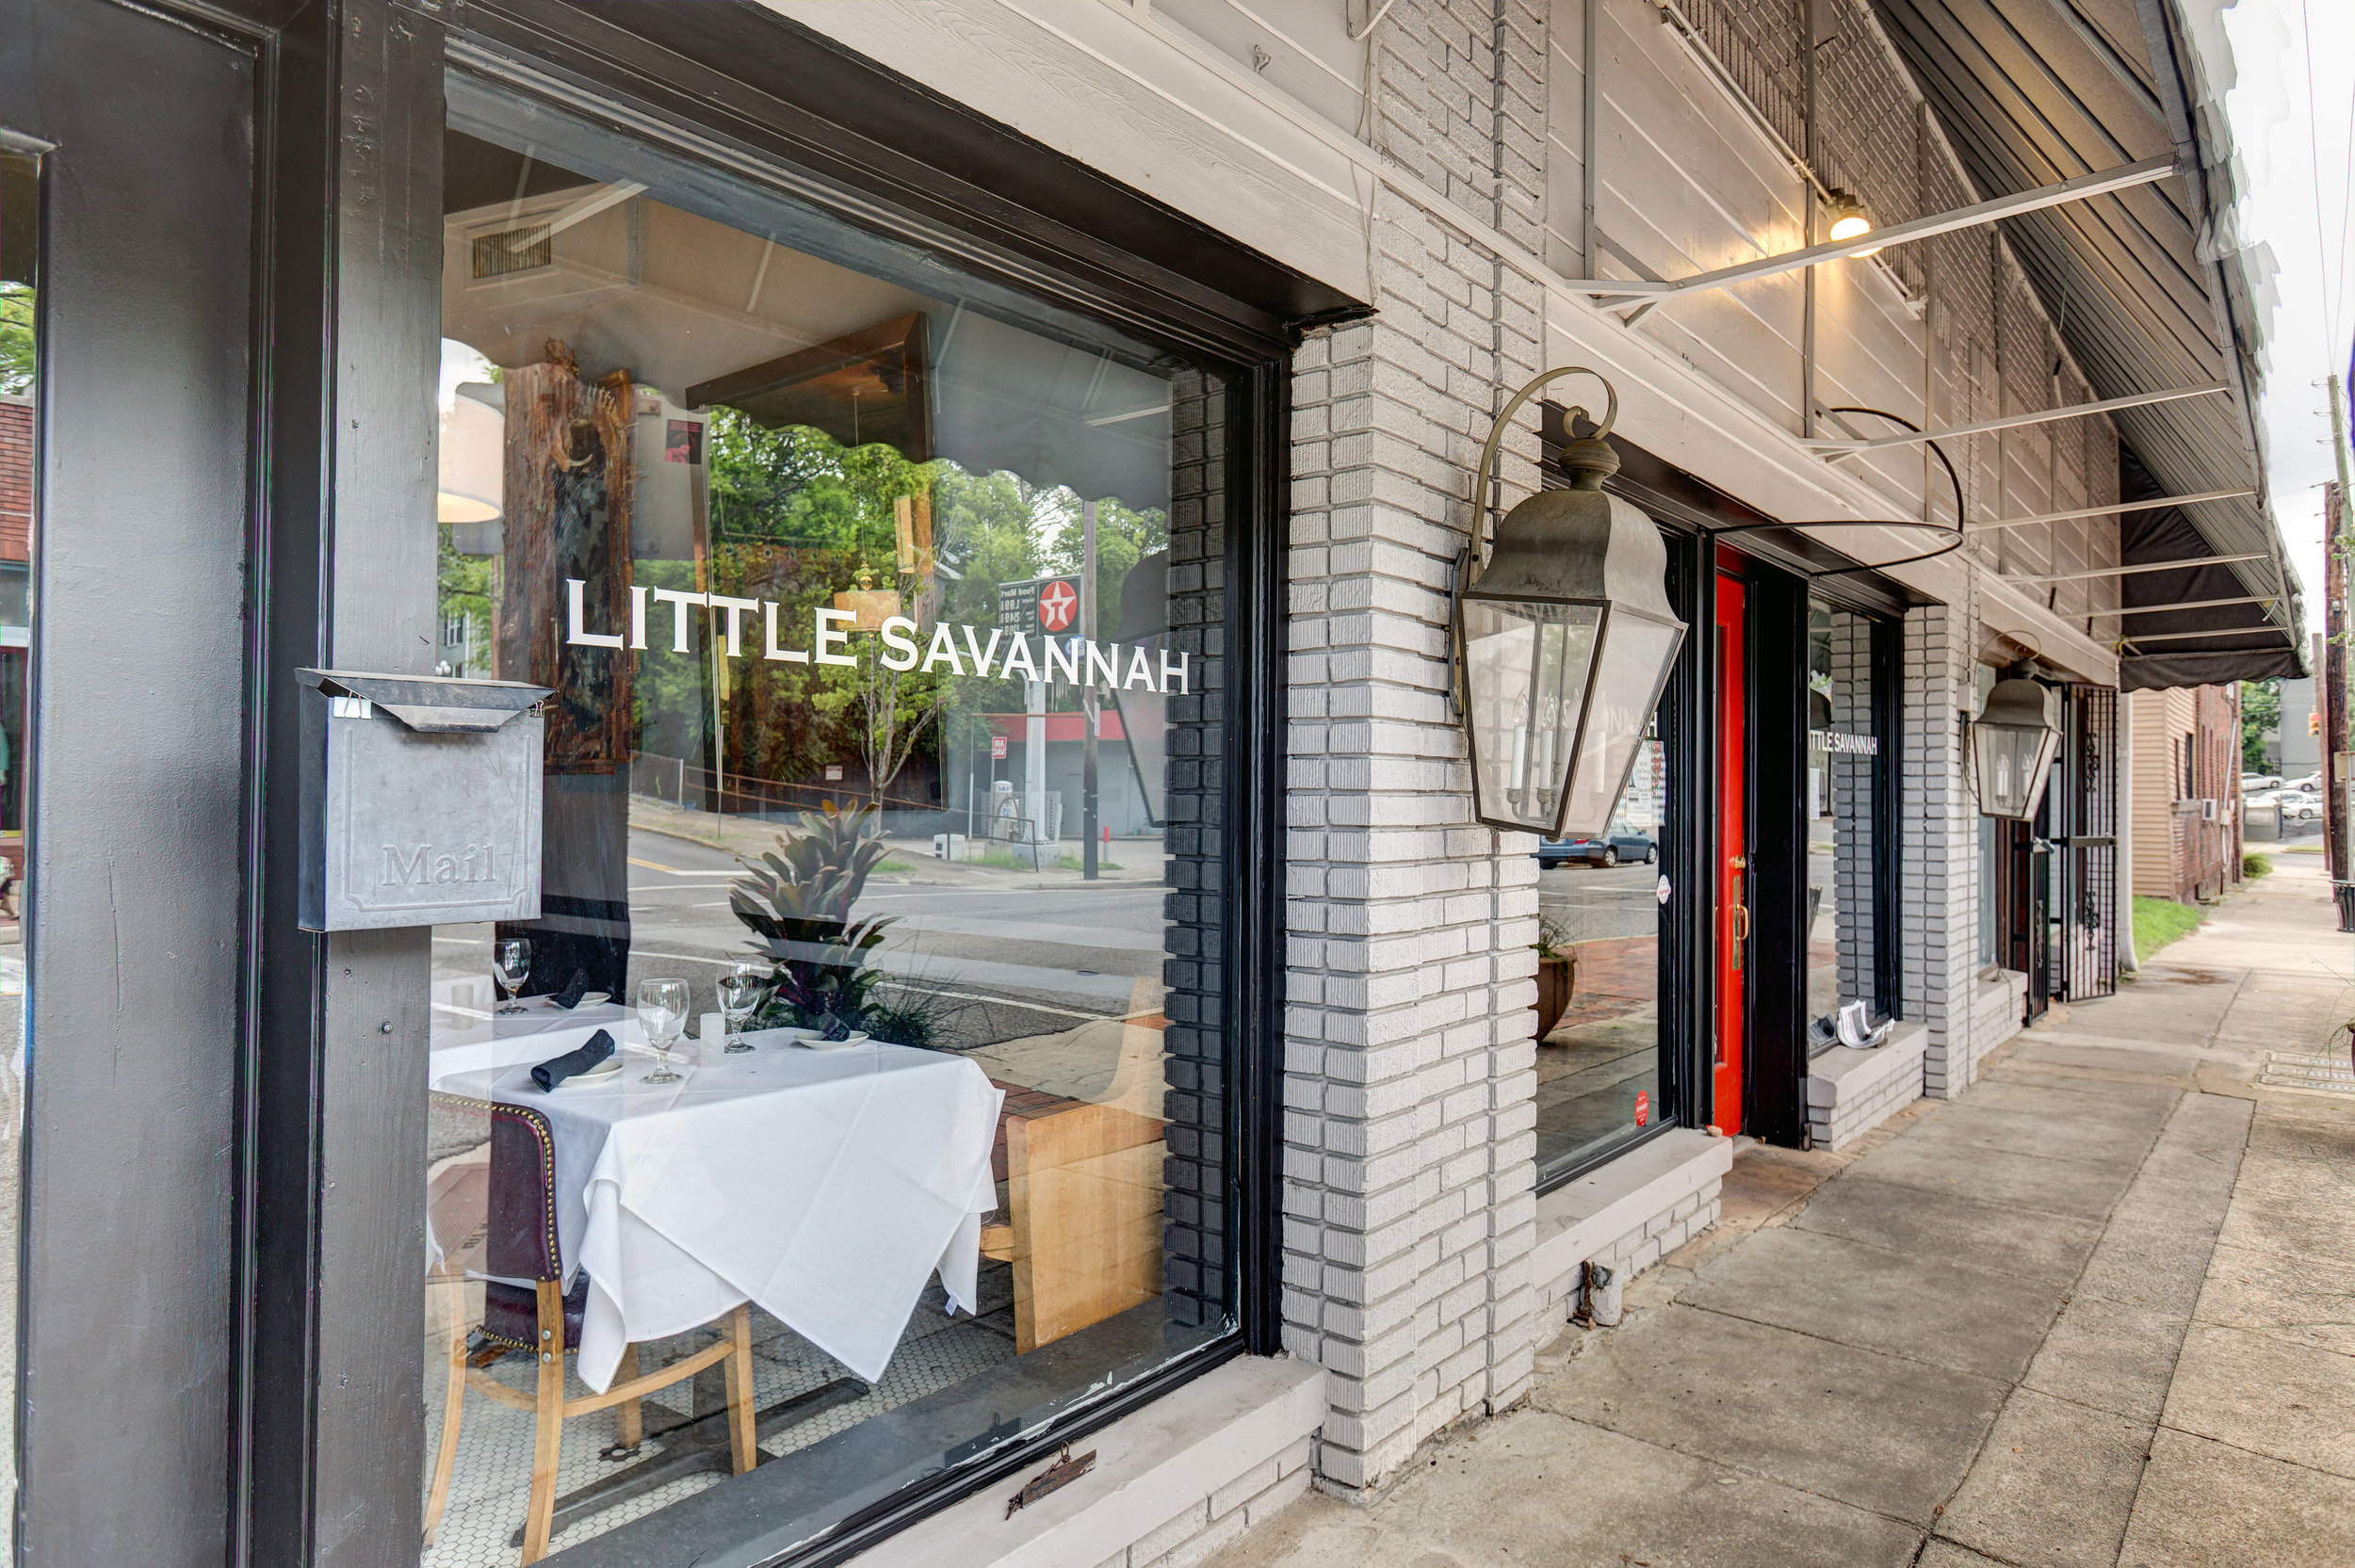 Little Savannah - This used to be a restaurant I always wanted to go to on my birthday - it was one of the only ones open during that week, but I would eat there even if I had a ton of options! They have really good red meat there, and the environment is super cozy.